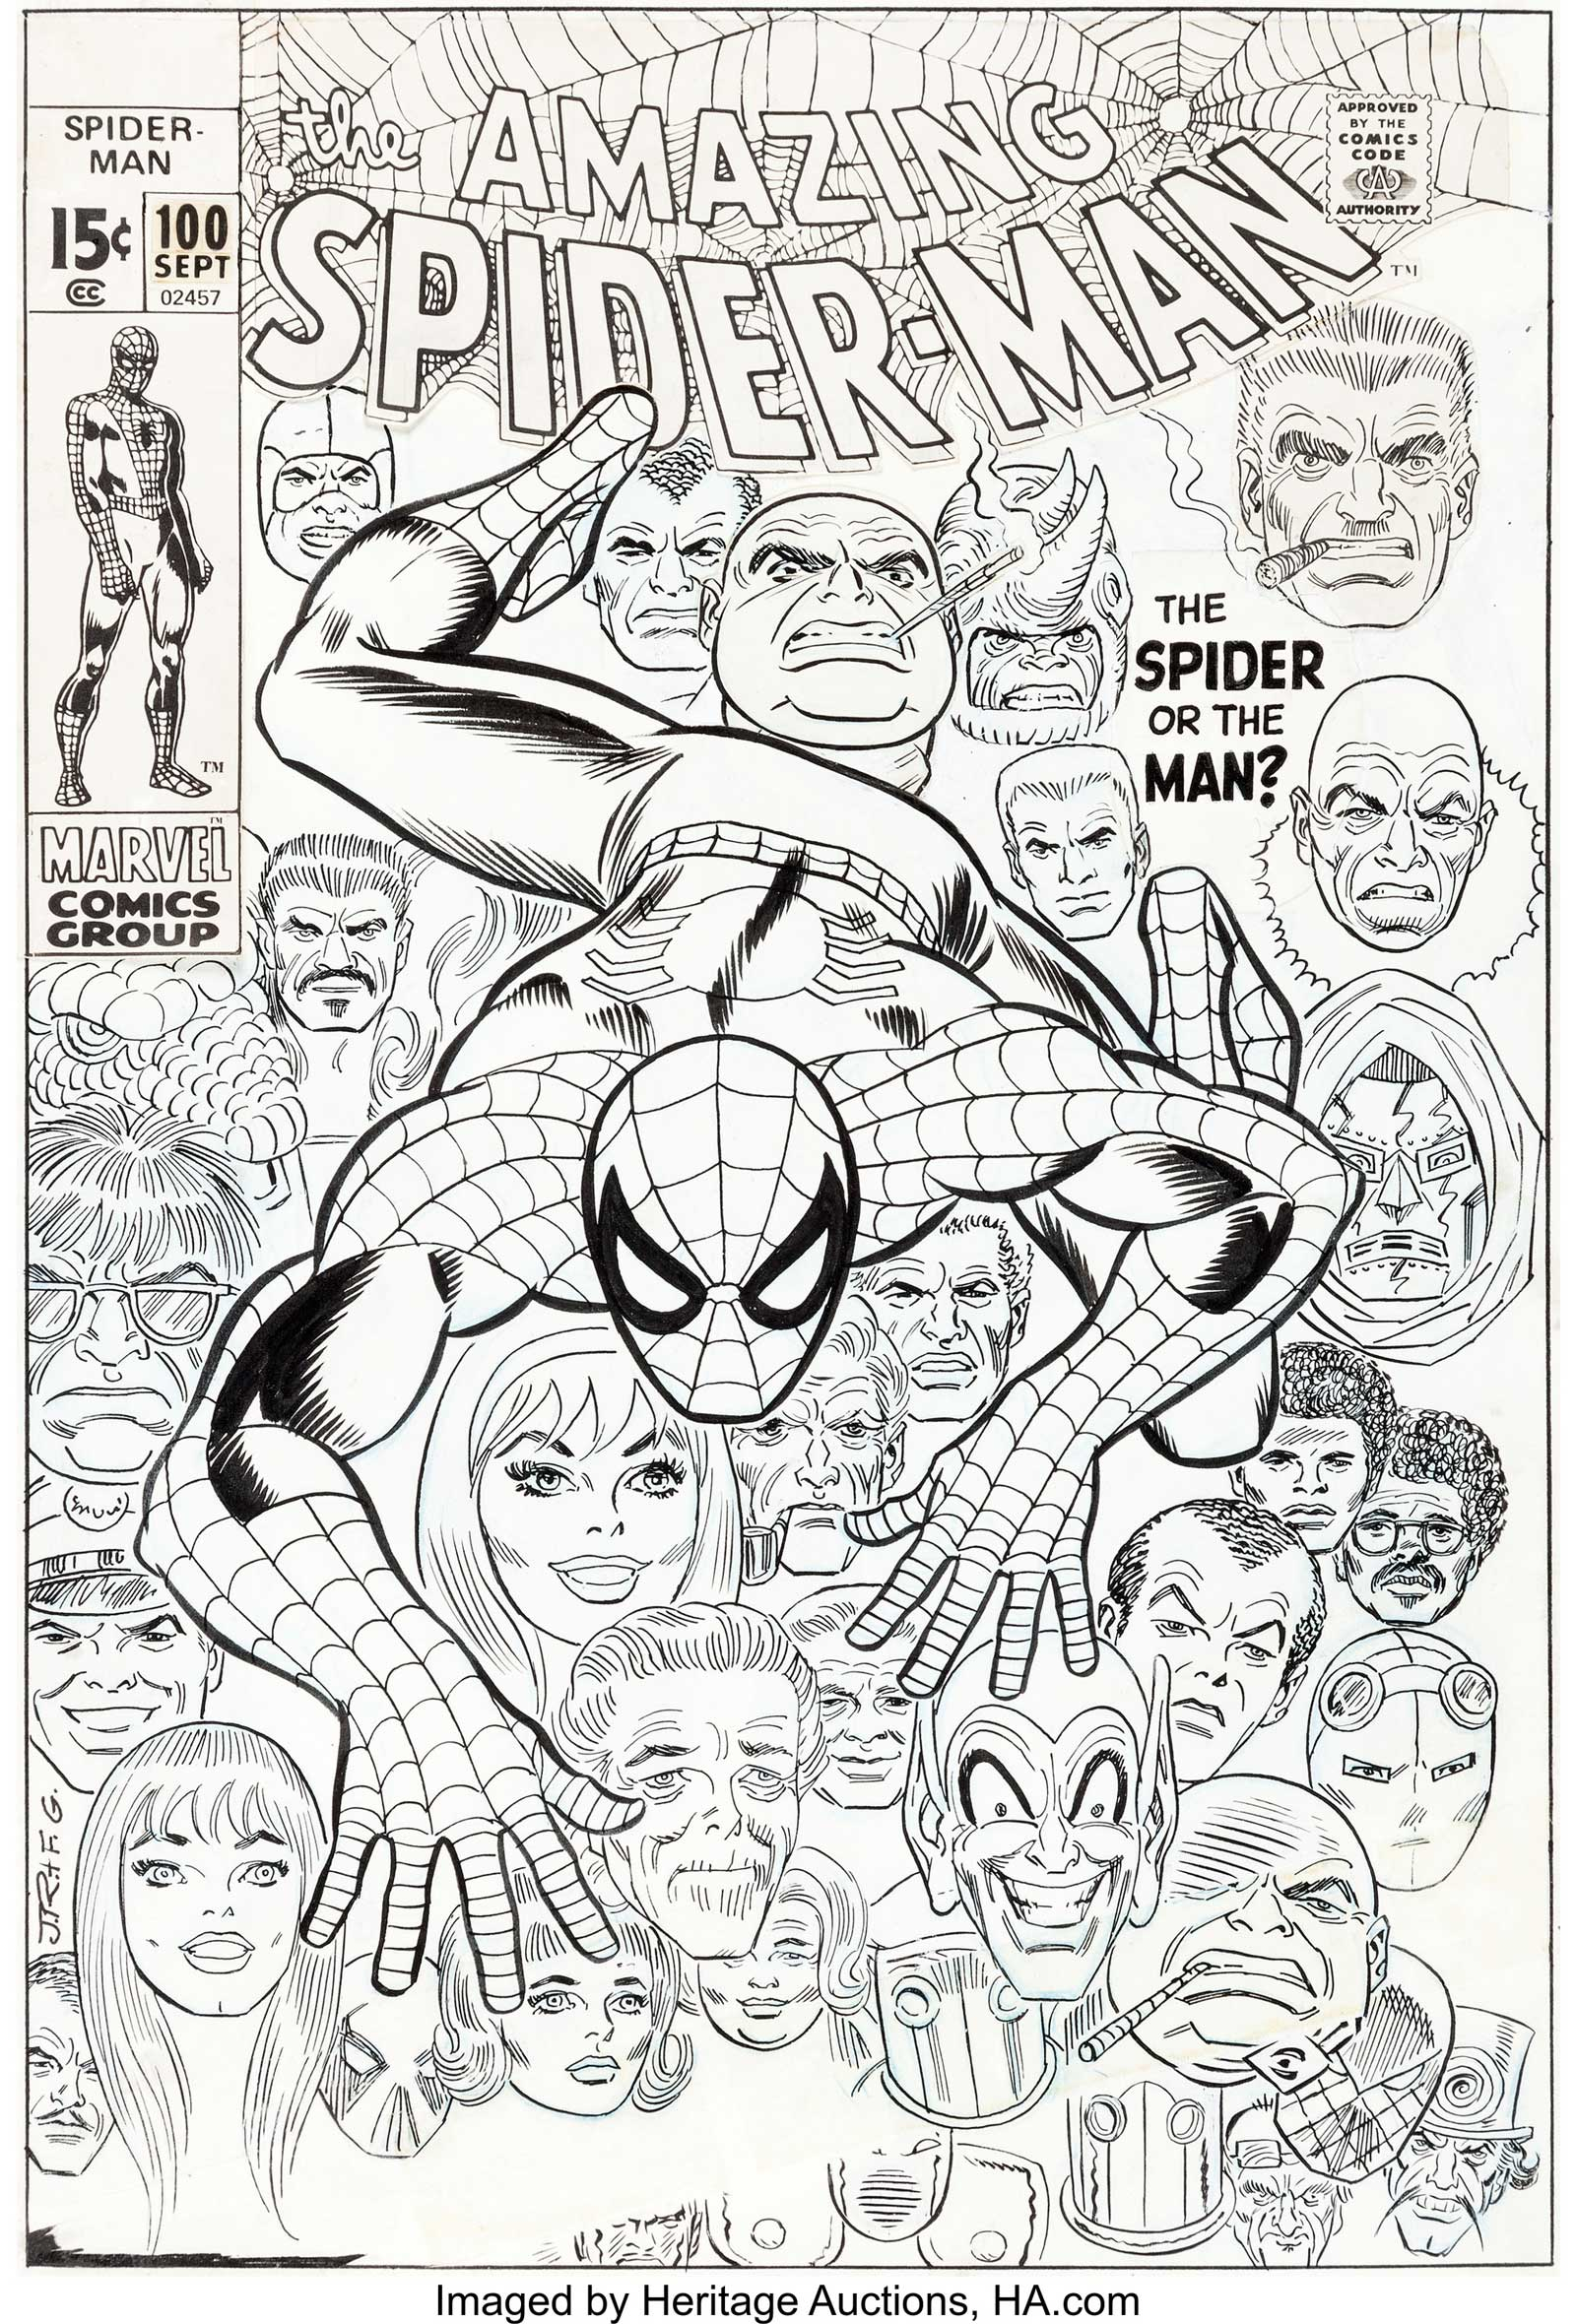 John Romita Sr. and Frank Giacoia Amazing Spider-Man #100 Cover, published in 1971)